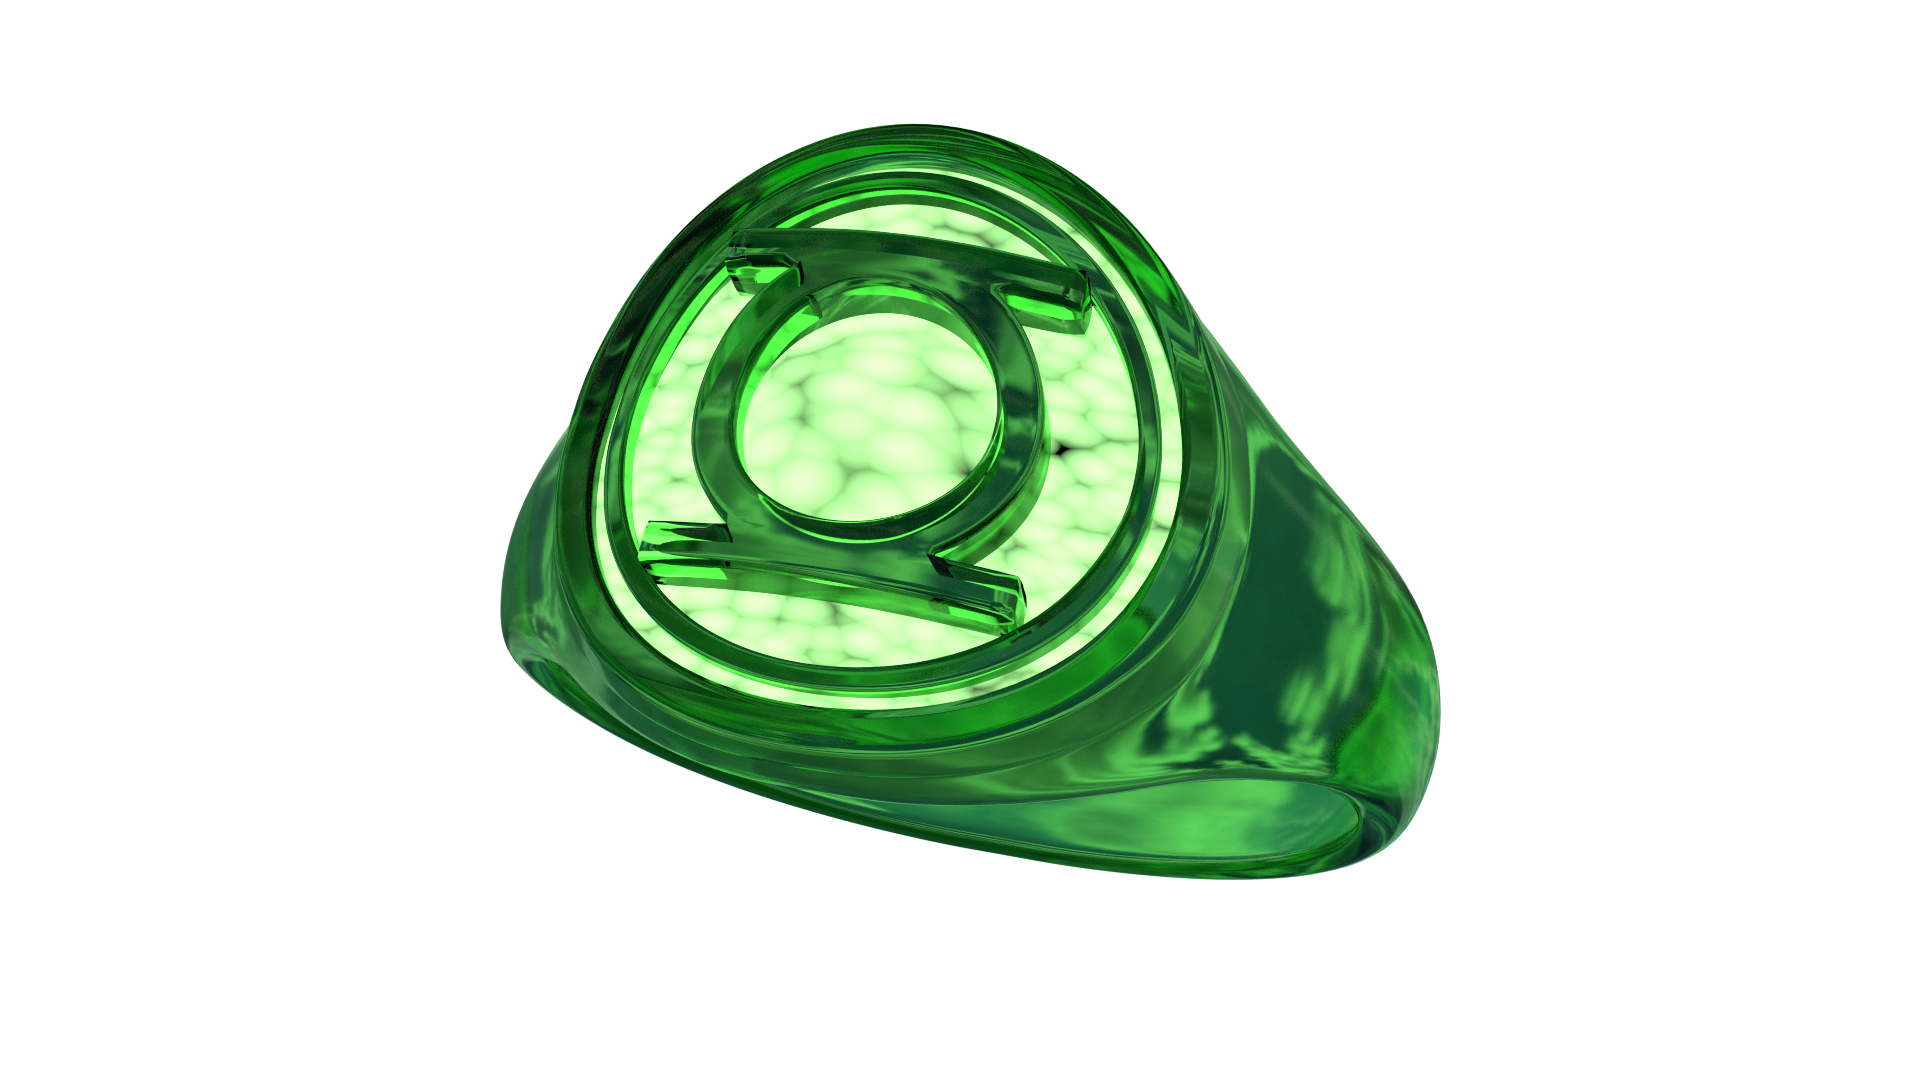 What Is A Lantern Power Ring Made Of